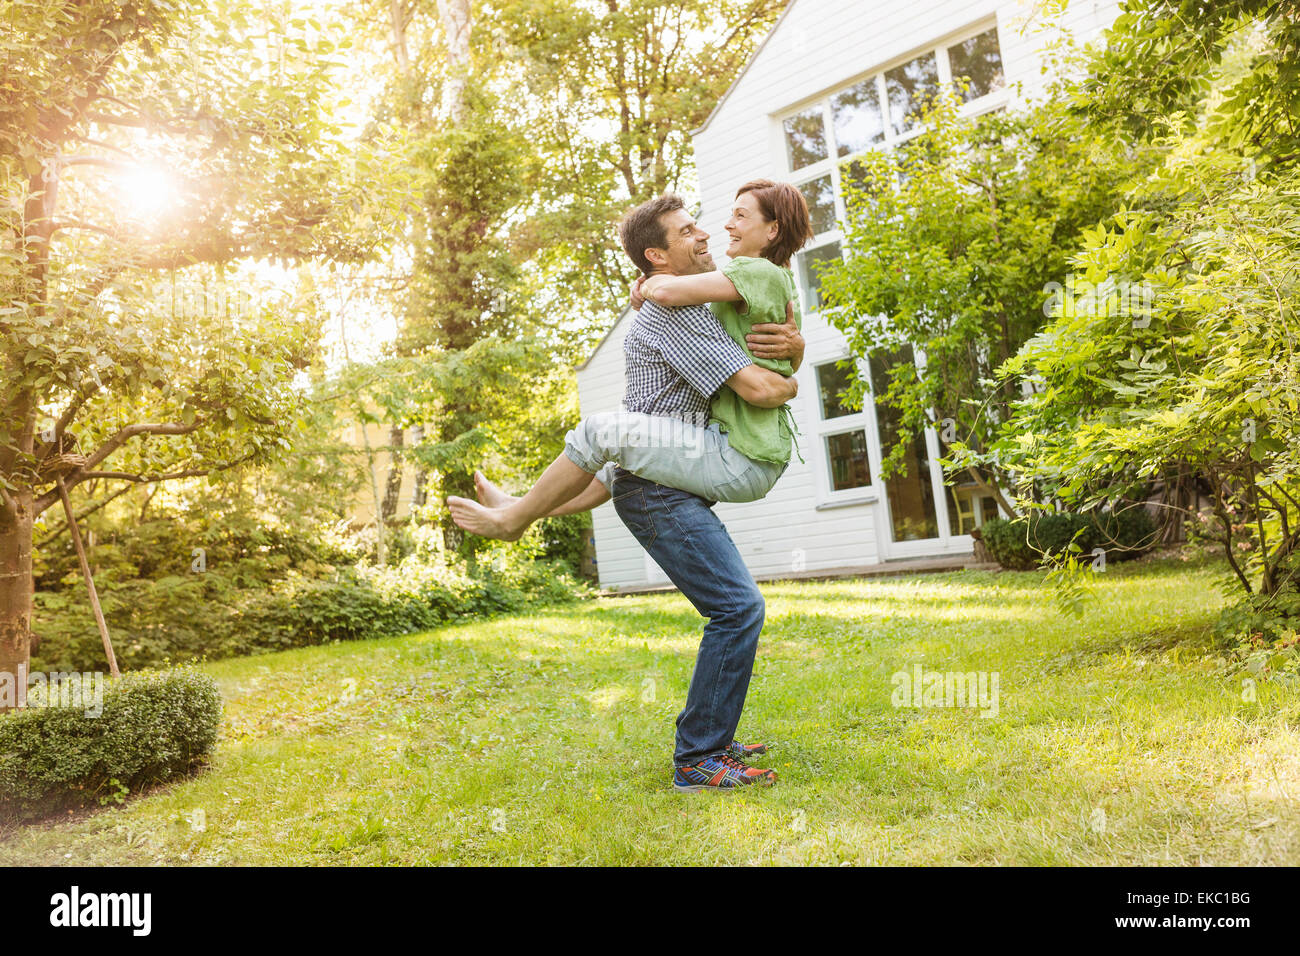 Couple hugging and playing in garden - Stock Image